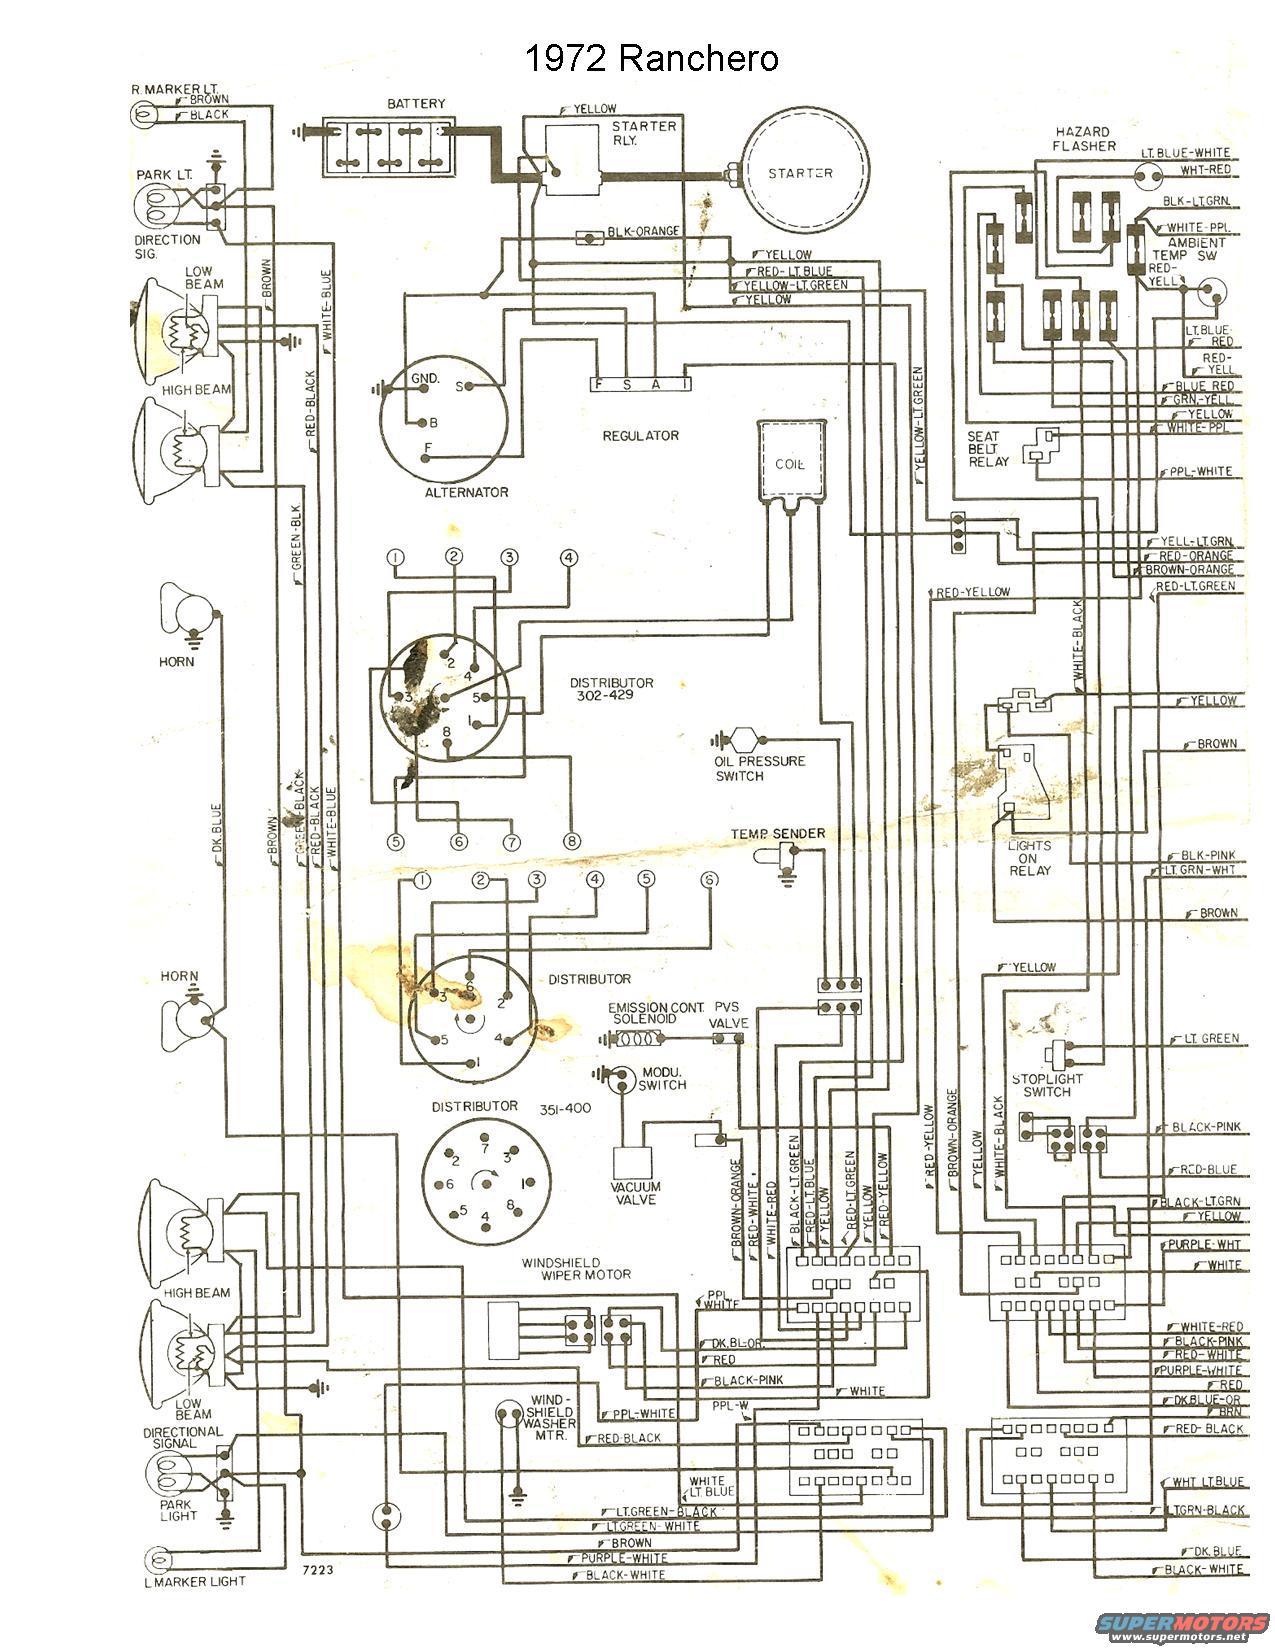 Torino Fuse Diagram Content Resource Of Wiring Ford Ranger Box Layout 19 99 Show 72 76 Diagrams Ranchero Us Rh 2011 F 150 Panel